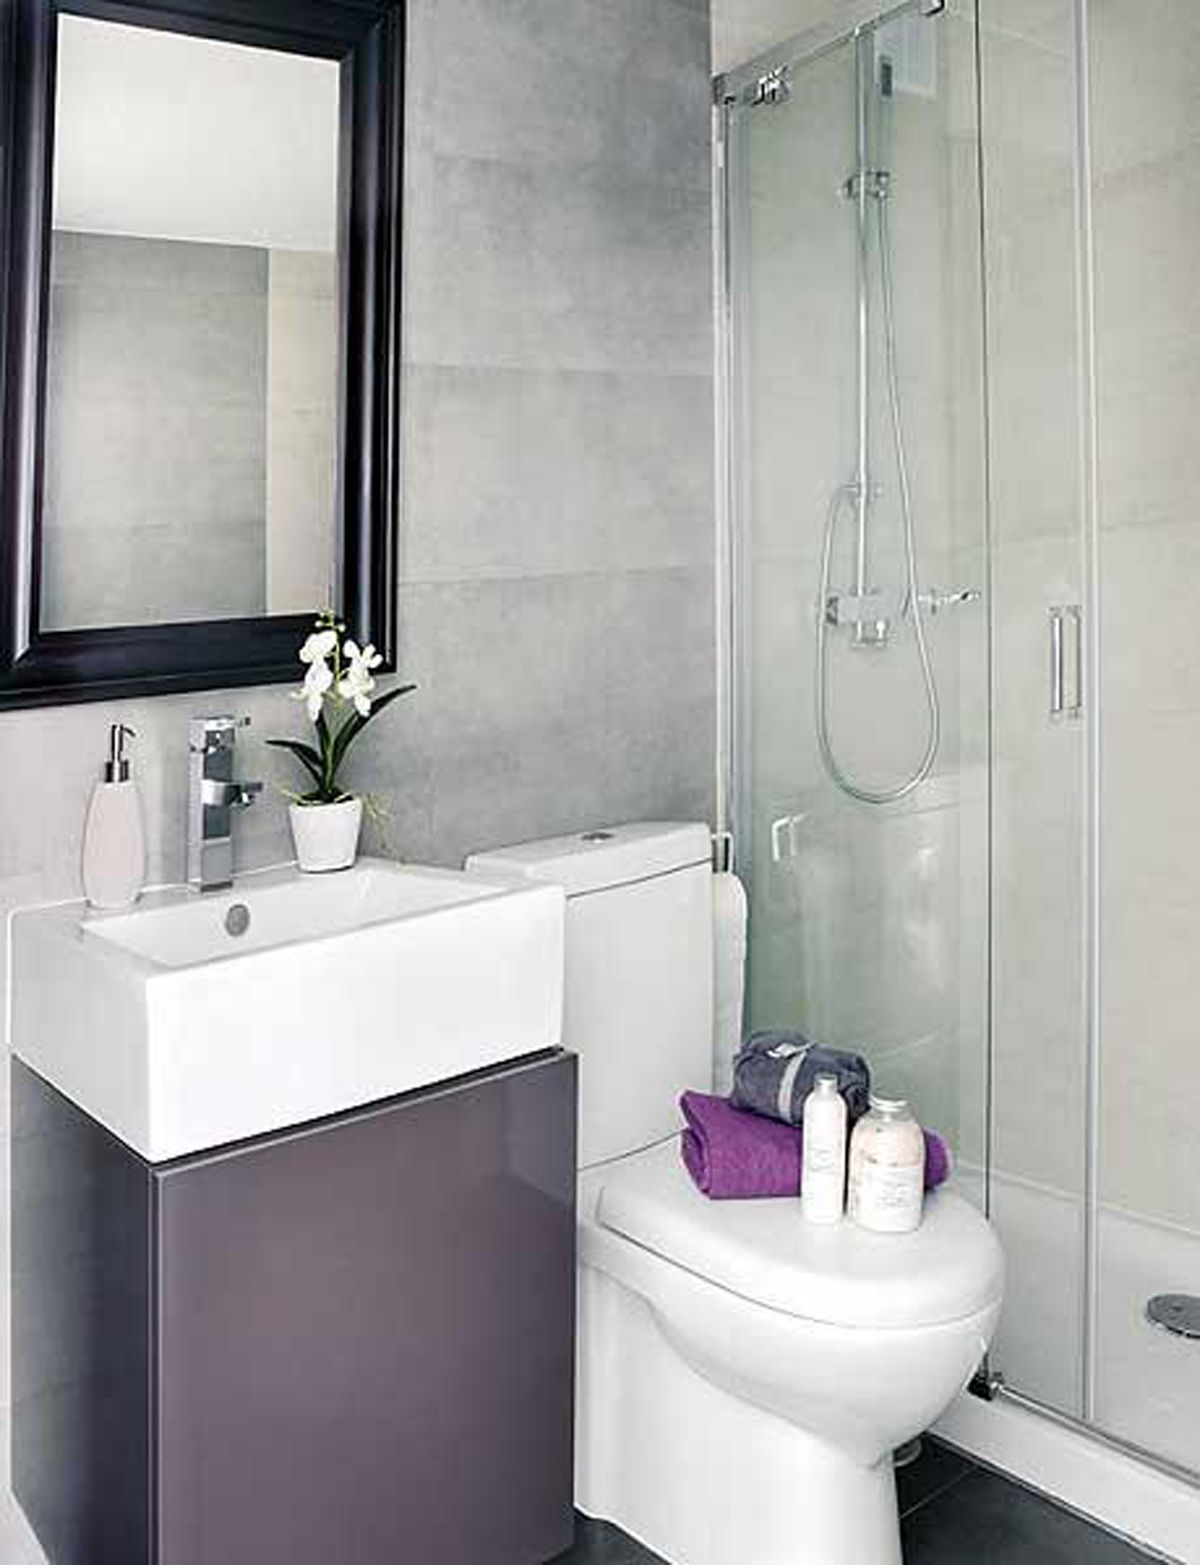 Contemporary Bathroom Design Ideas Photos intrinsic interior design applied in small apartment architecture